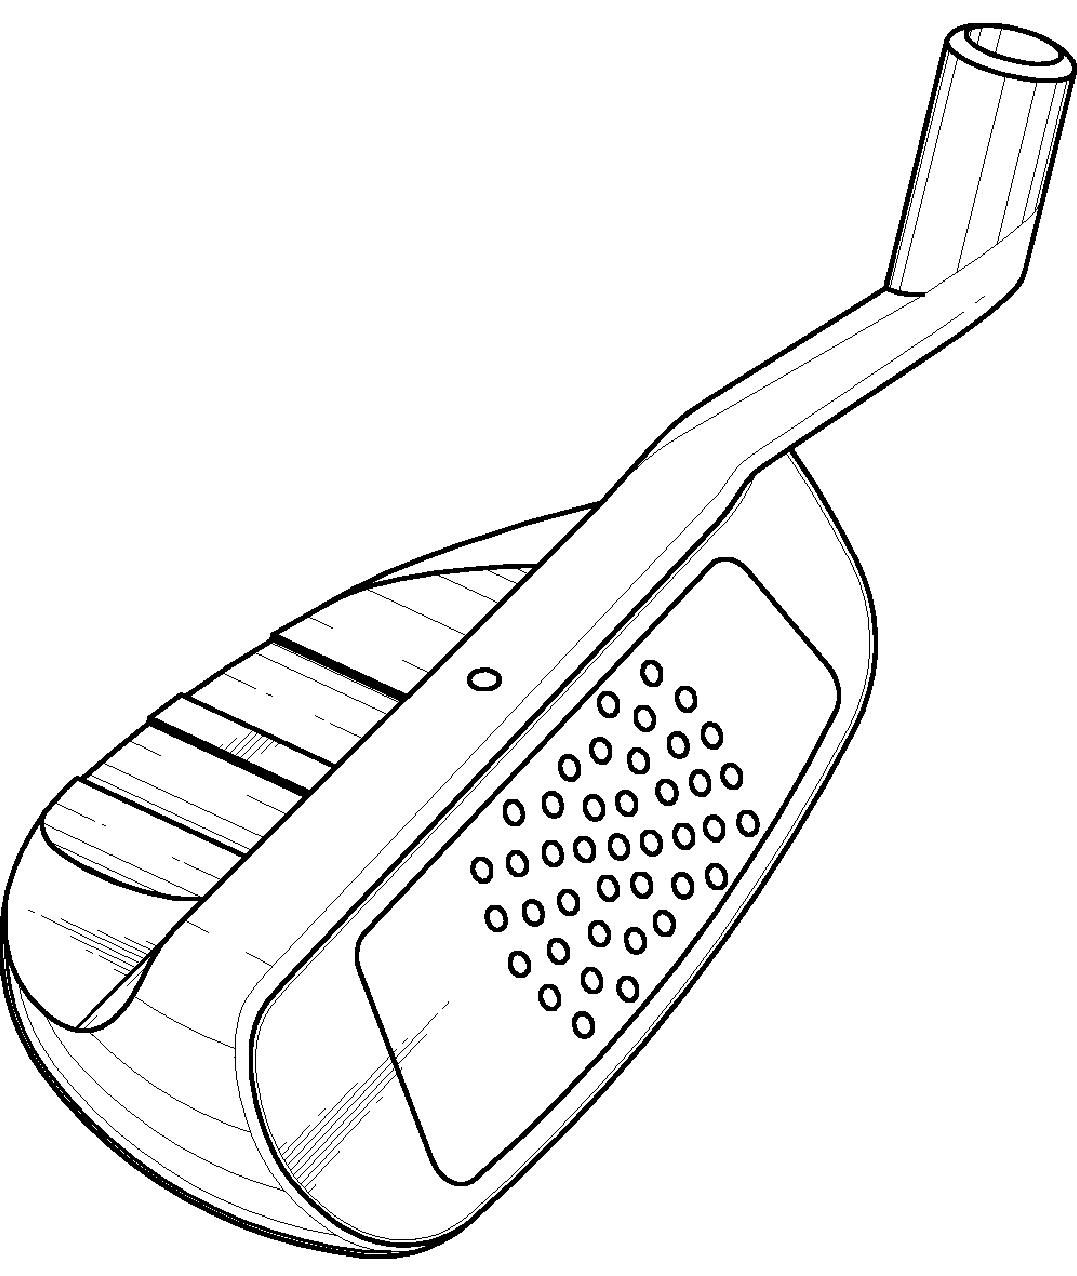 1077x1276 A First On The Golf Patents Blog! Can You Identify This Chipper